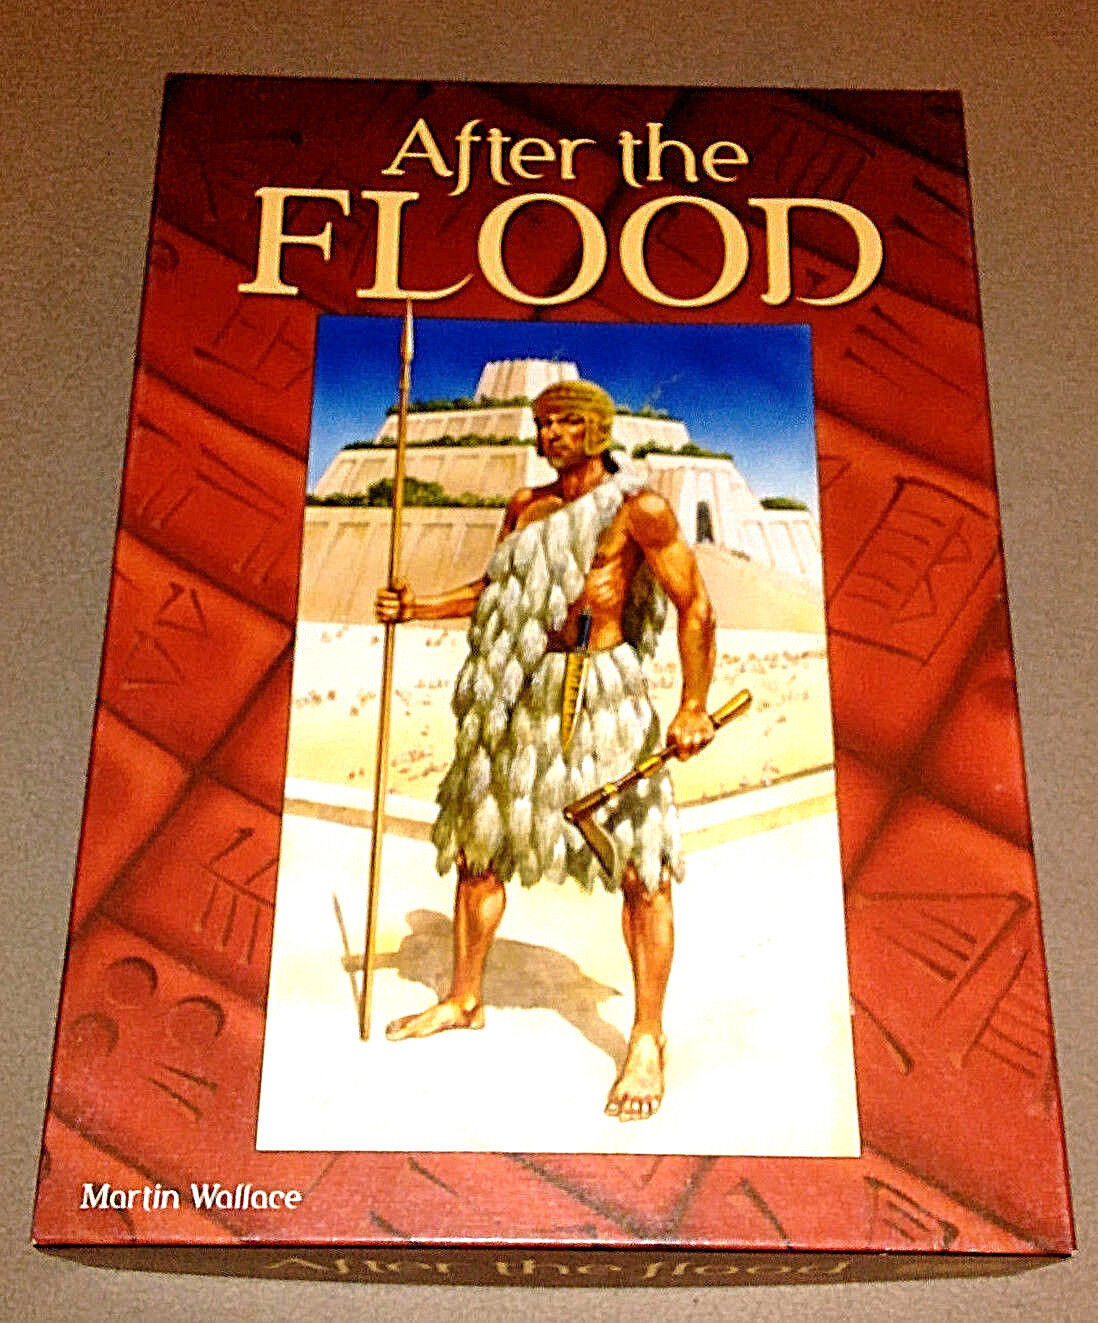 After the Flood -  69 OF 1500 - - - Signed Martin Wallace UNPLAYED-VERIFIED COMPLETE b0b46a